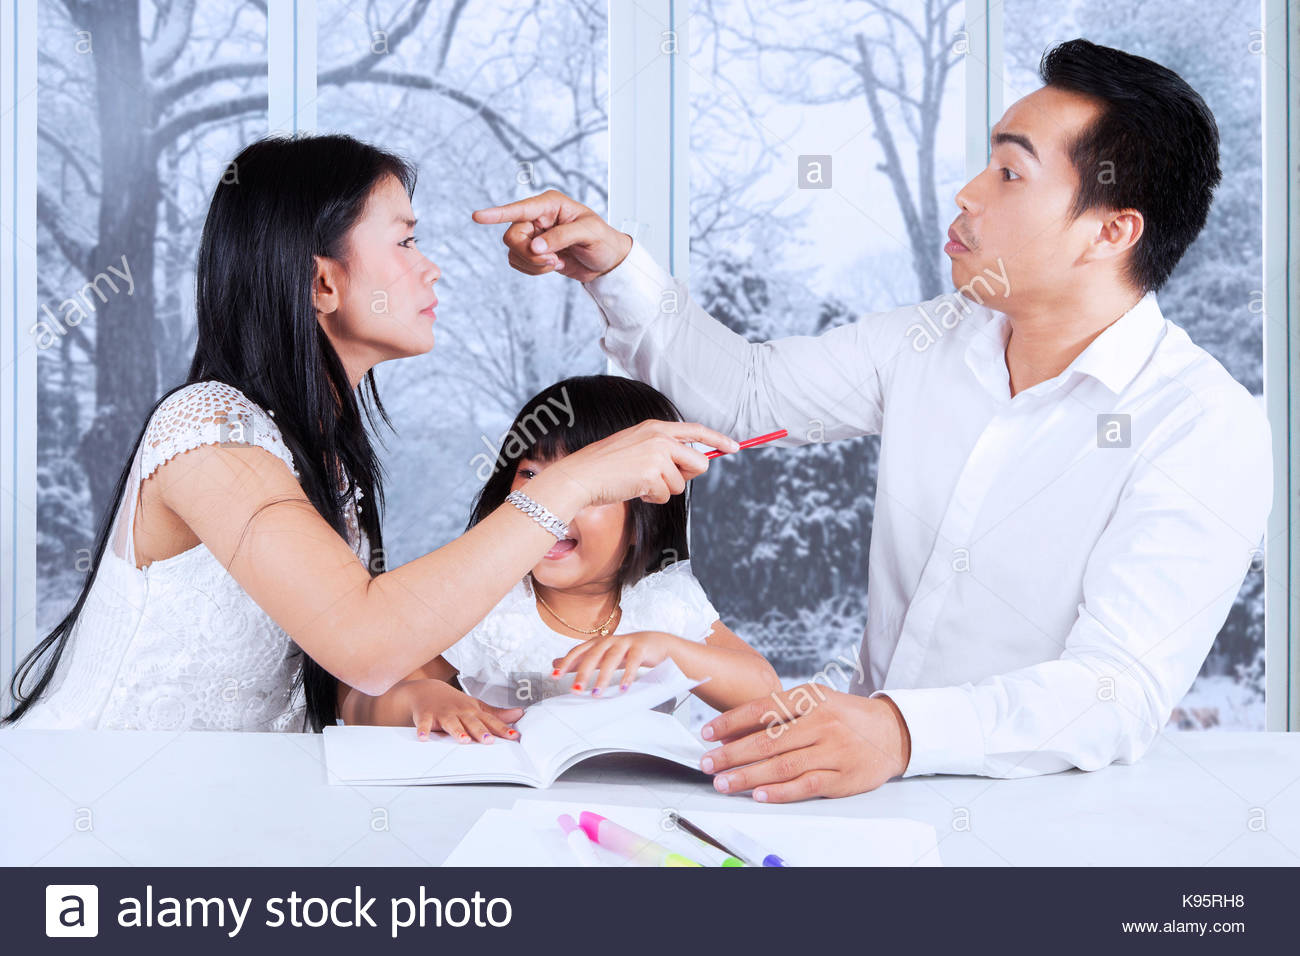 a family argument Family resemblance (german:  he develops his argument further by insisting that in such cases there is not a clear cut boundary but there arises some ambiguity if .